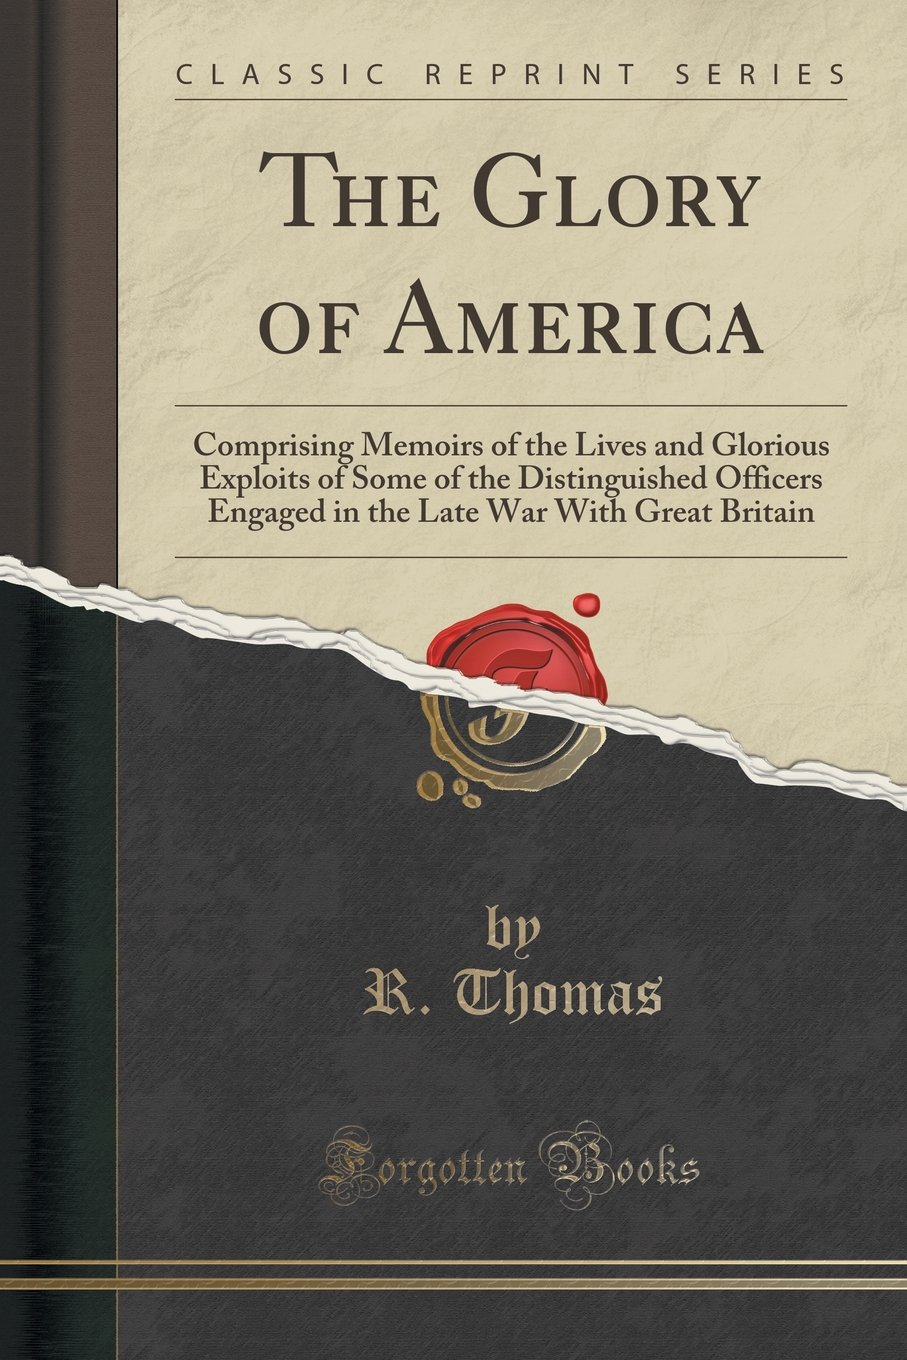 Download The Glory of America: Comprising Memoirs of the Lives and Glorious Exploits of Some of the Distinguished Officers Engaged in the Late War With Great Britain (Classic Reprint) ebook